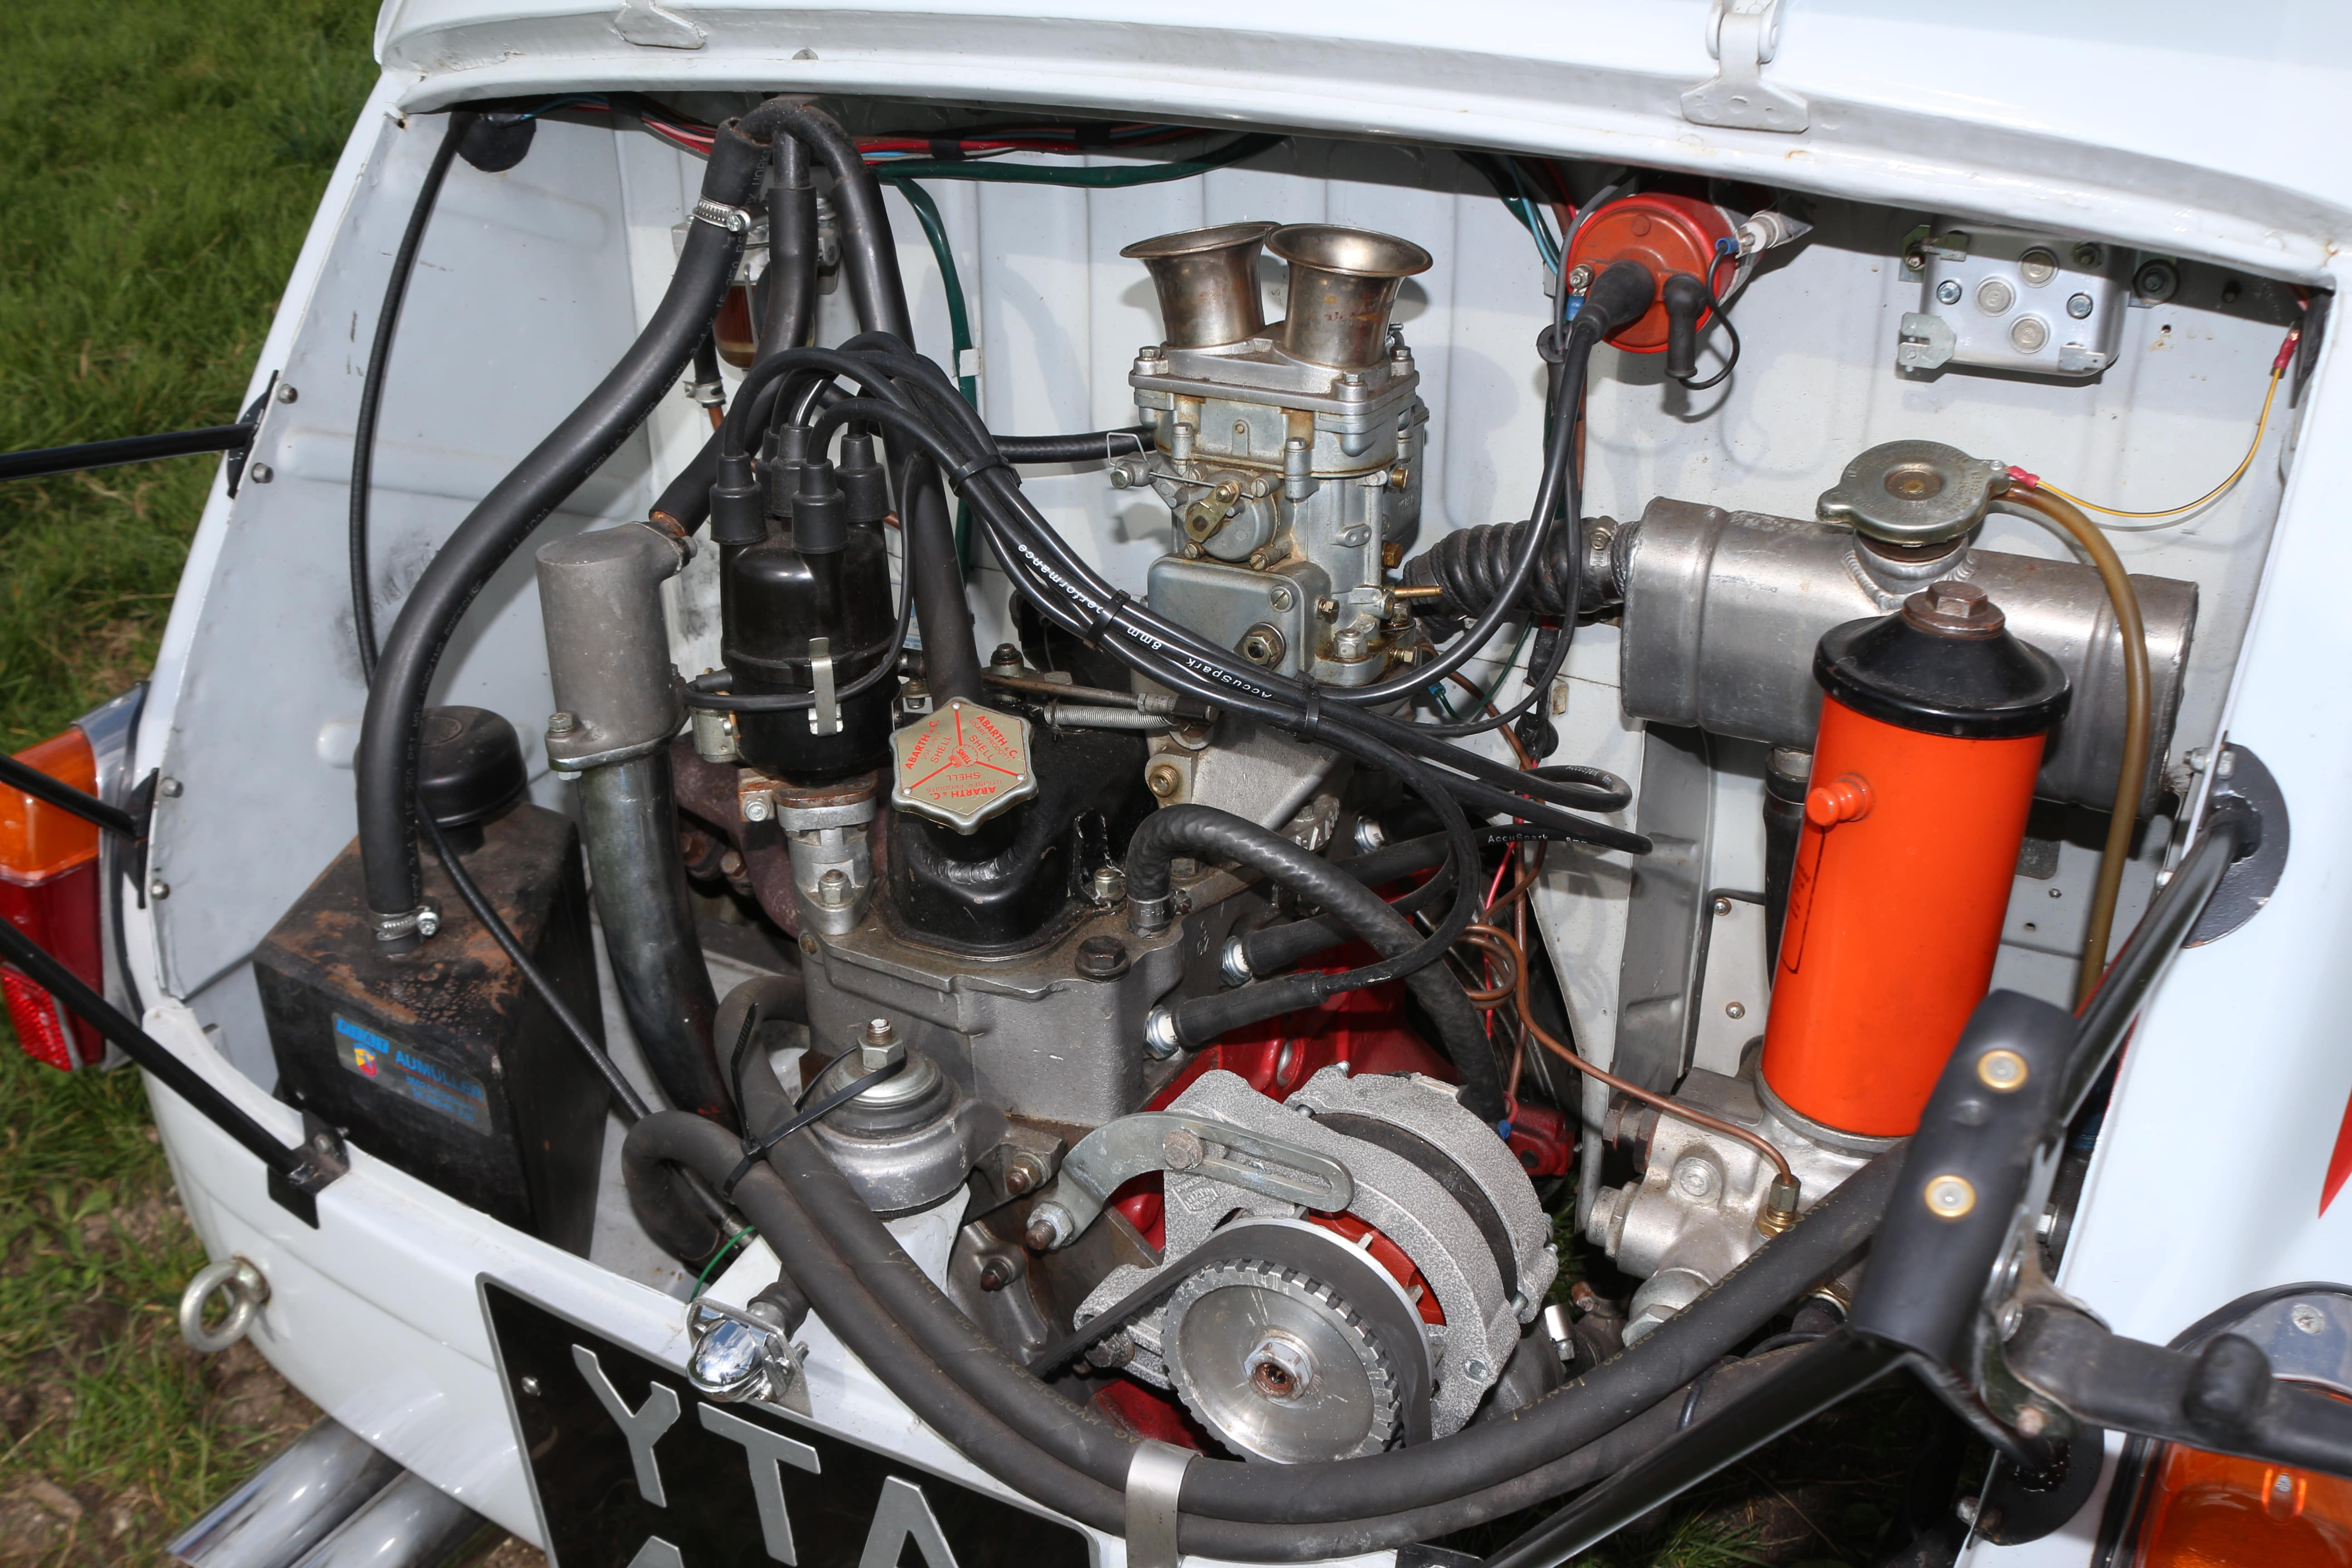 look beleive abarth a can motor pin engine fiat engines cylinder this cannot good